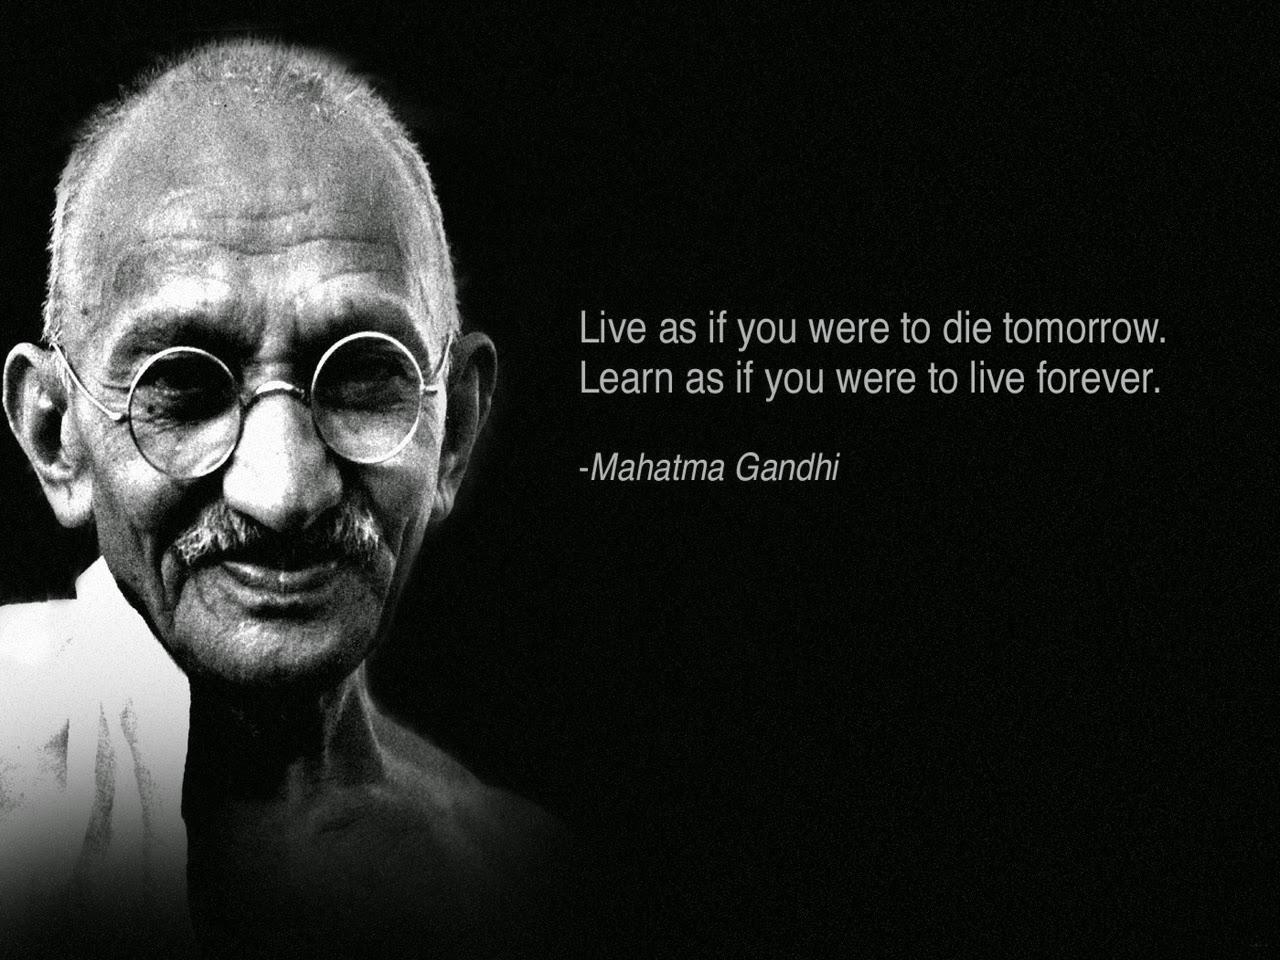 Live as if you were to die tomorrow learn as if